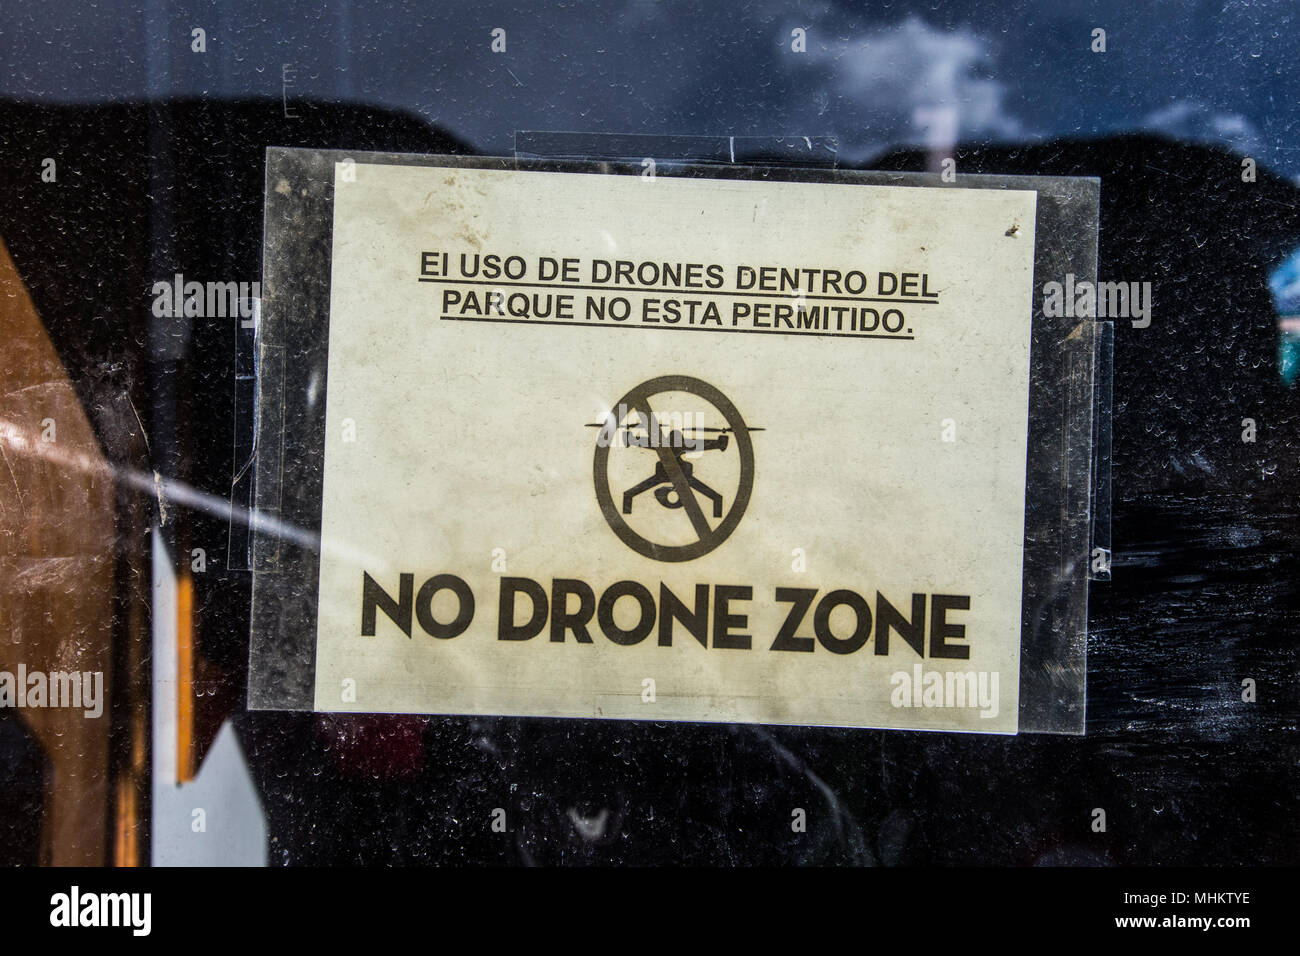 No Drone Zone sign, Porteria Laguna Amarga, access point to Torres del Paine National Park, Patagonia, Chile Stock Photo